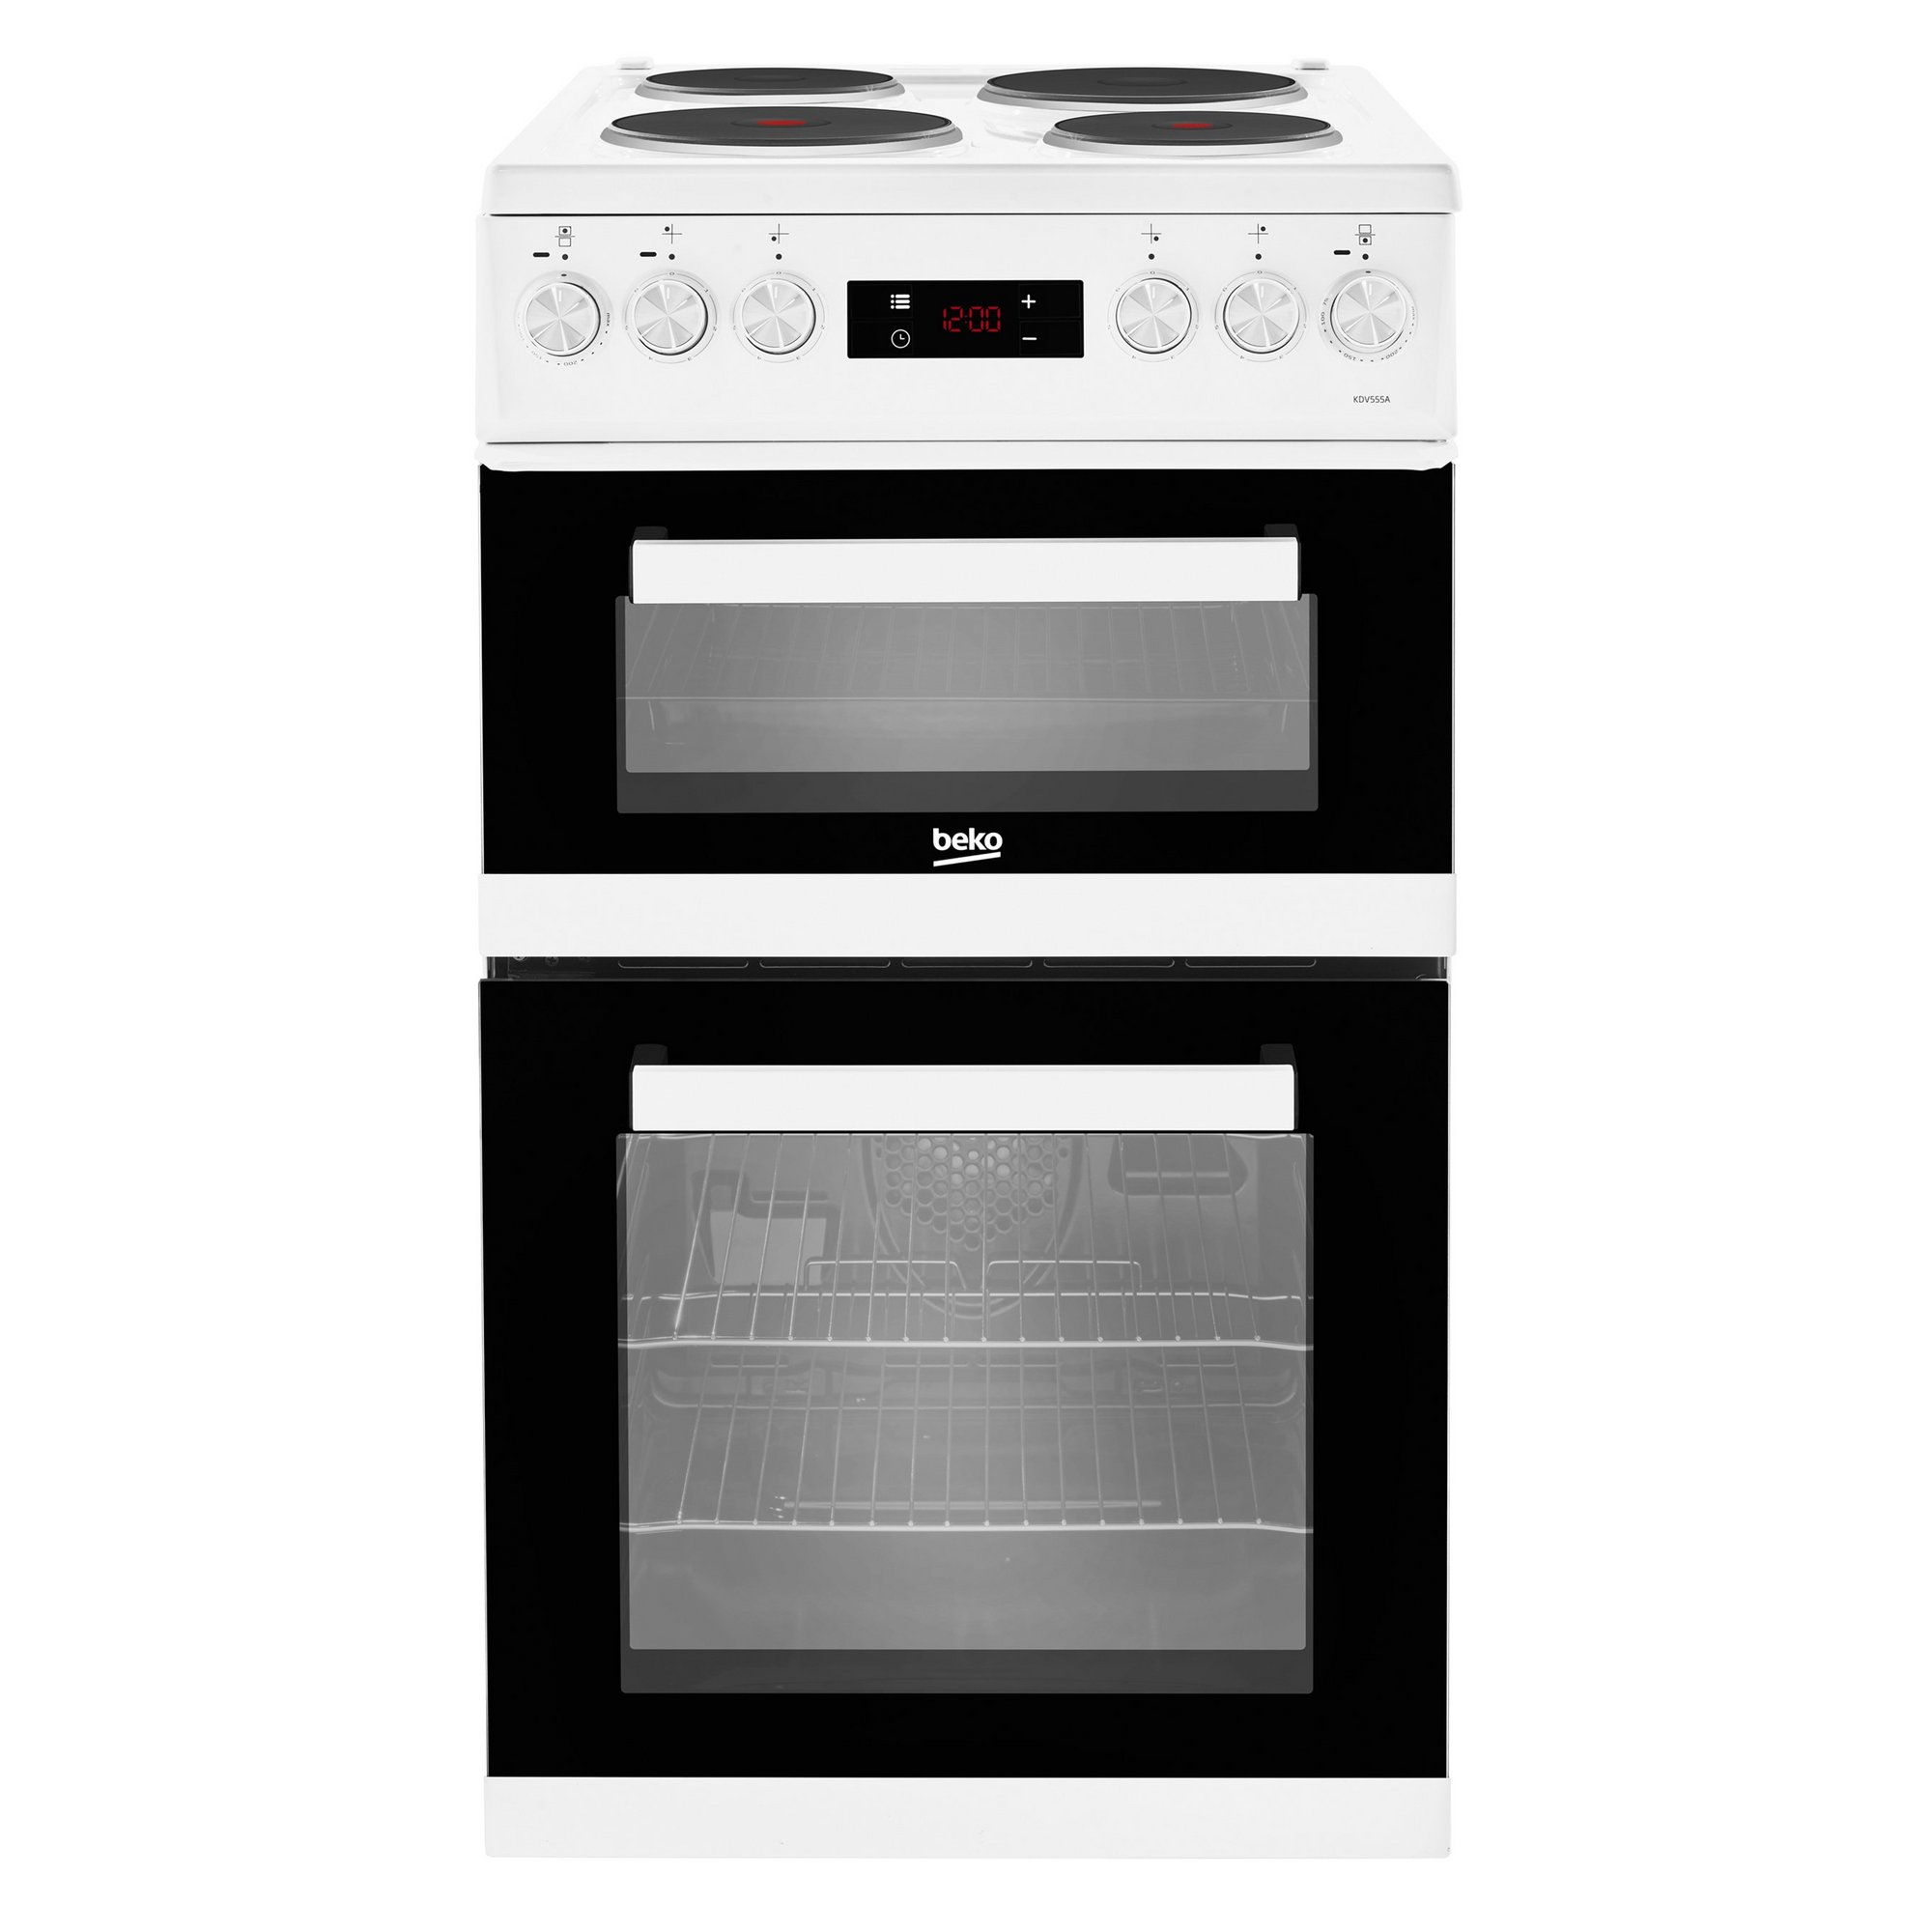 Image of Beko 50cm Double Oven Electric Cooker with Solid Plates